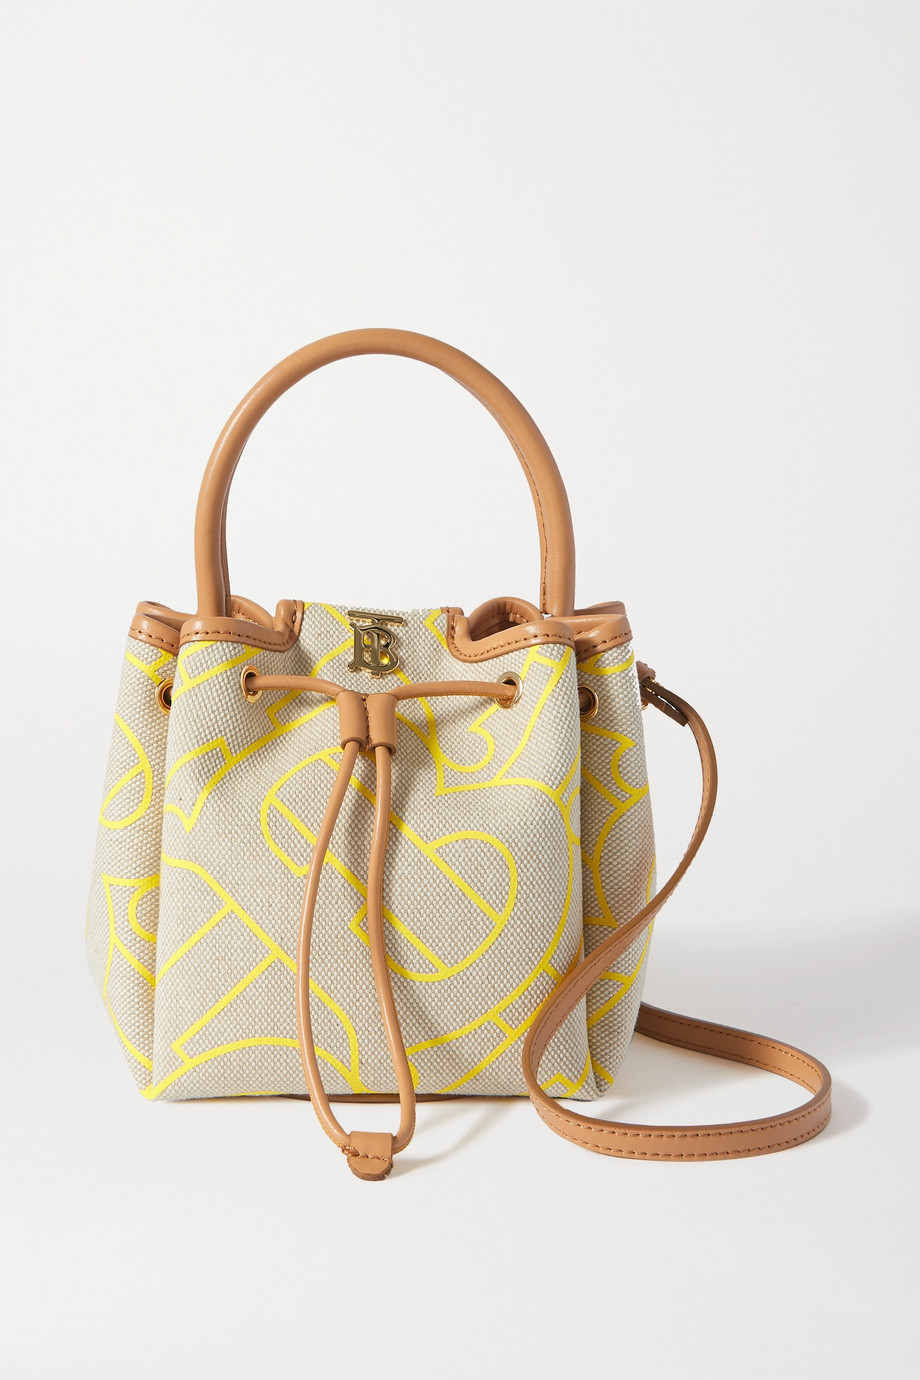 Burberry Small leather-trimmed printed canvas bucket bag